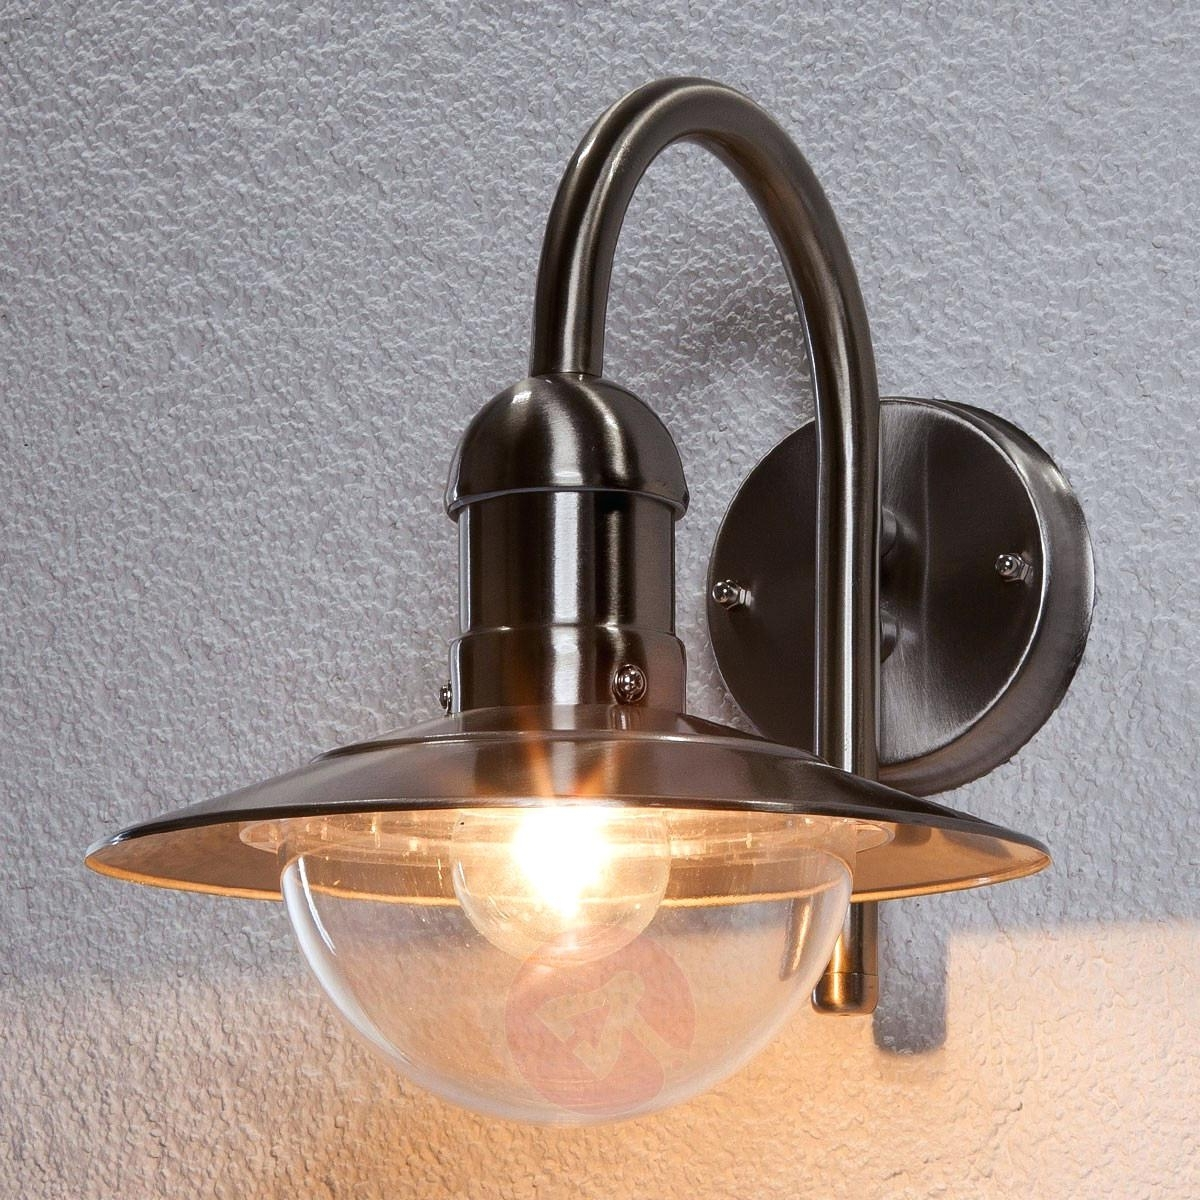 Famous Outdoor Wall Lamp Exterior Design Lantern With Gfci Outlet Sconces In Outdoor Wall Lights With Gfci Outlet (View 2 of 20)